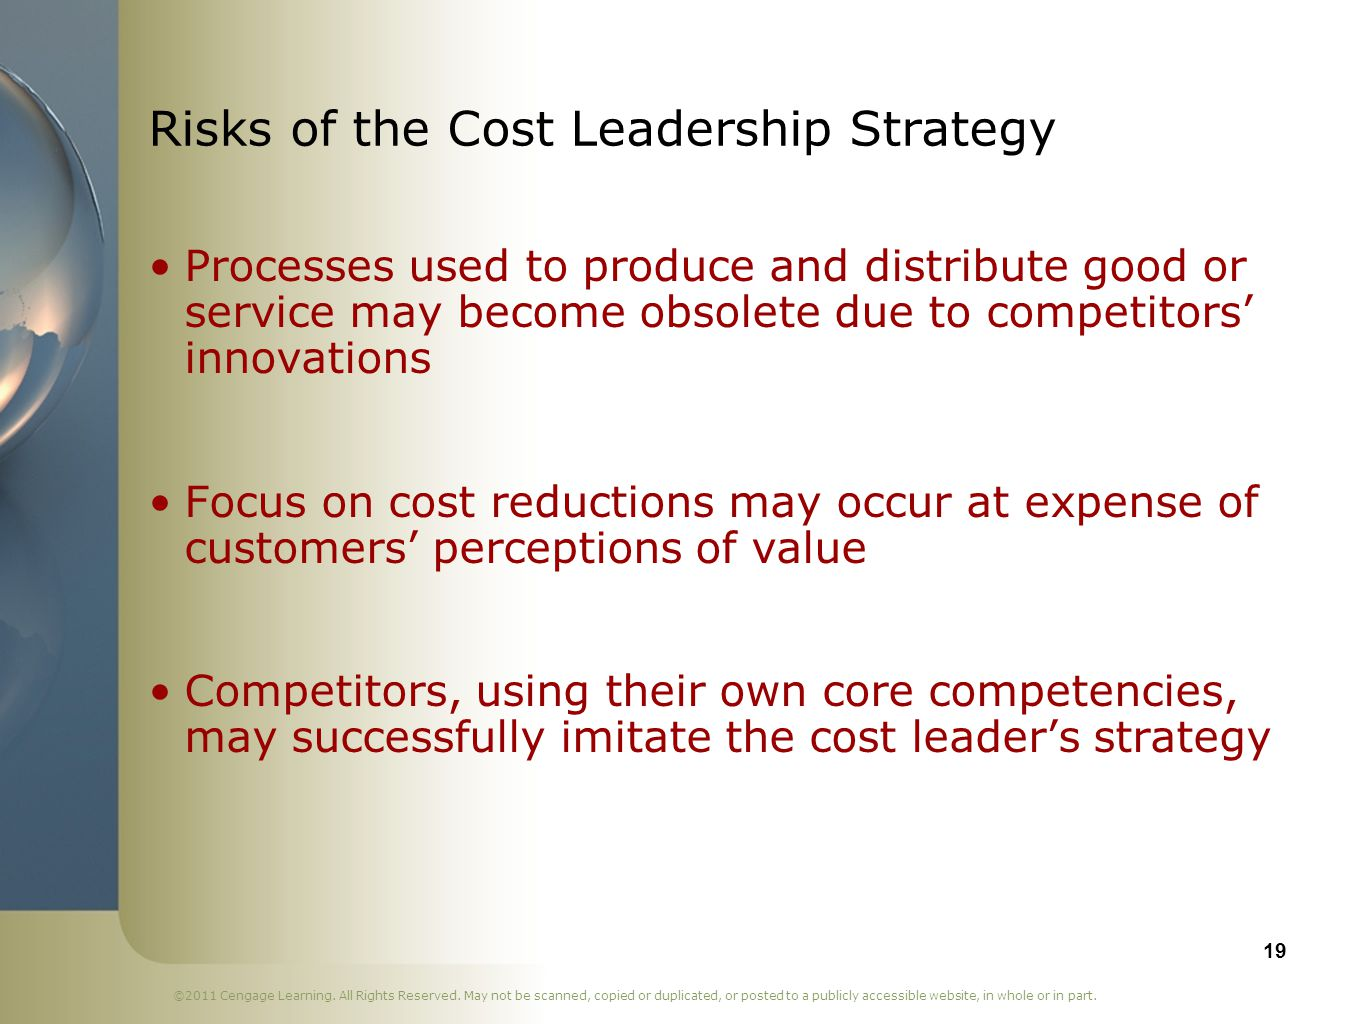 Risks of the Cost Leadership Strategy